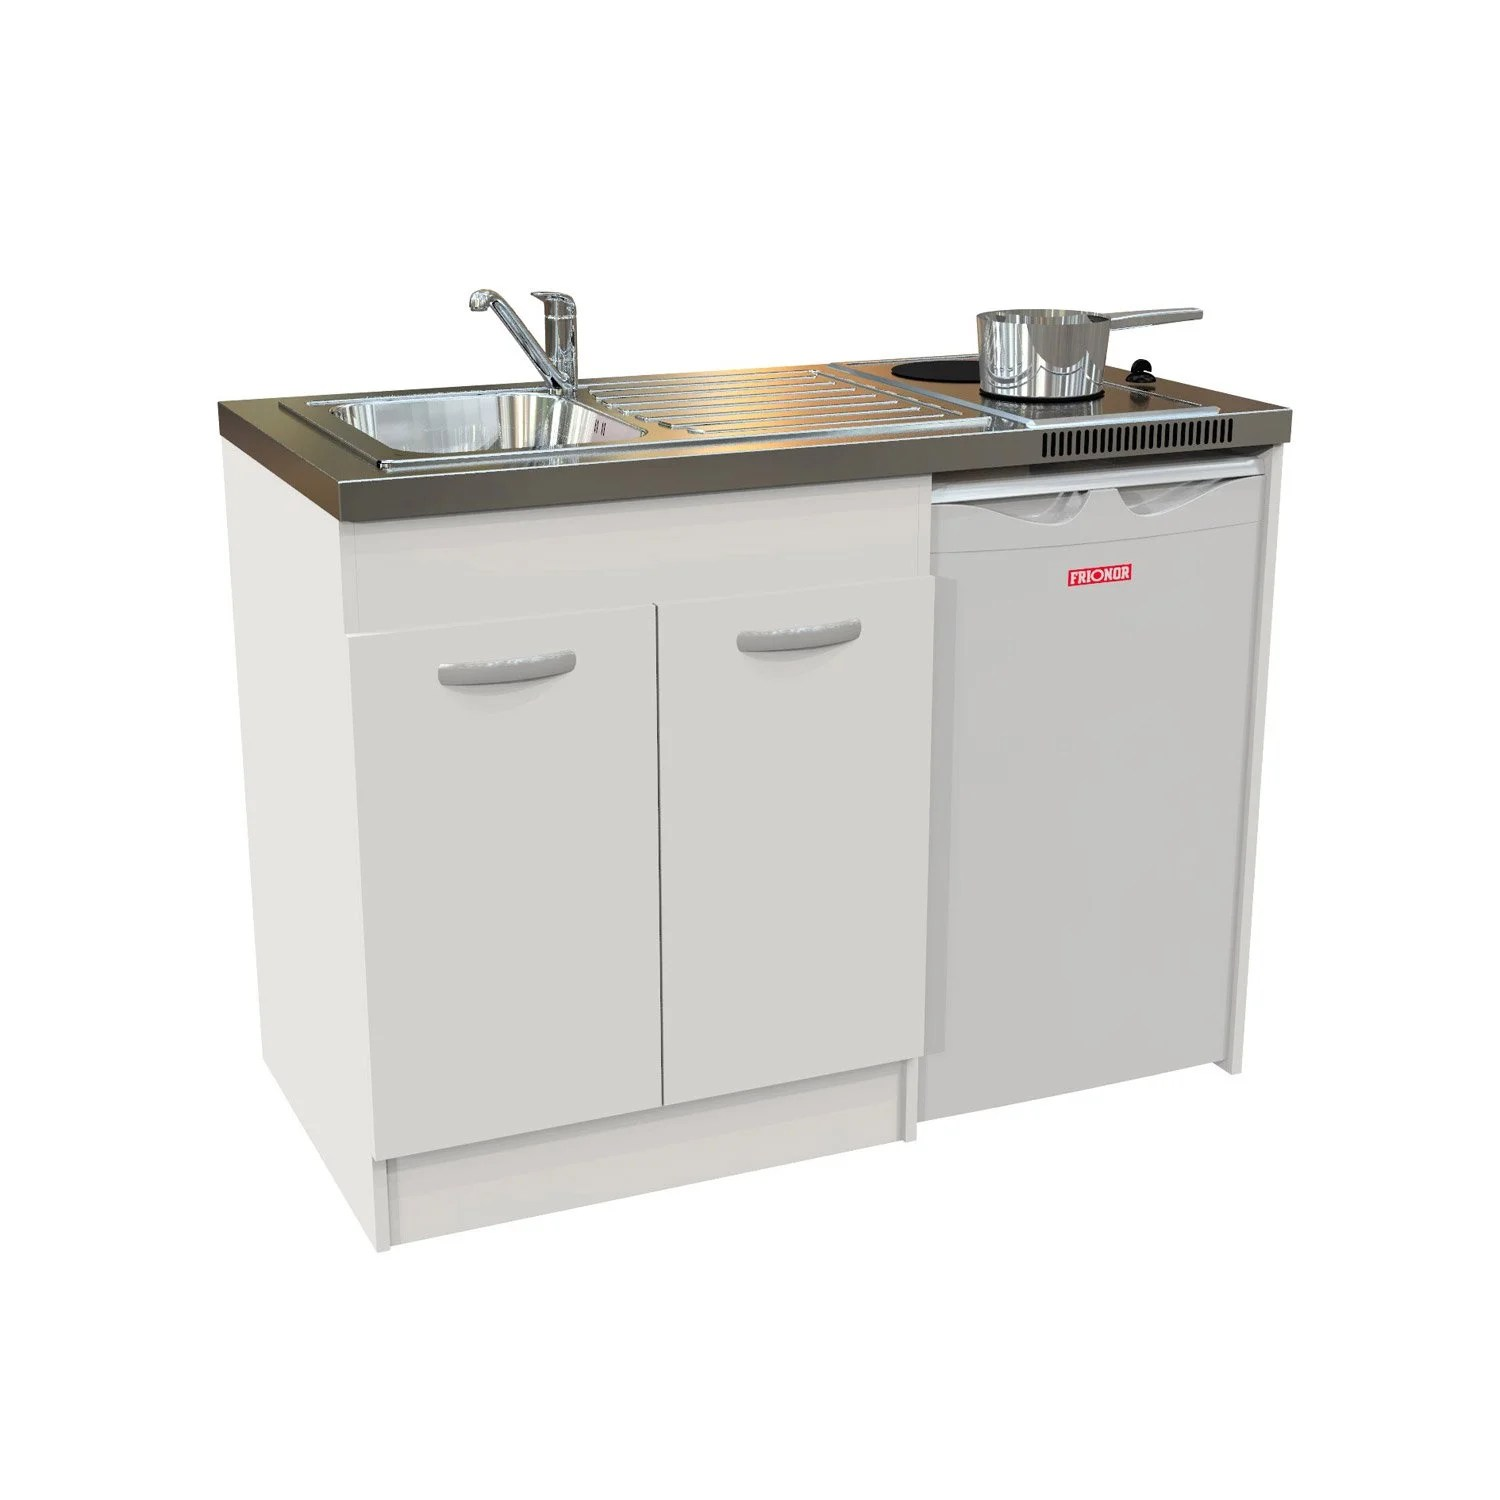 Kitchenette Leroy Merlin Kitchenette Electrique Blanc Spring H 92 5 X L 120 X P 60 Cm